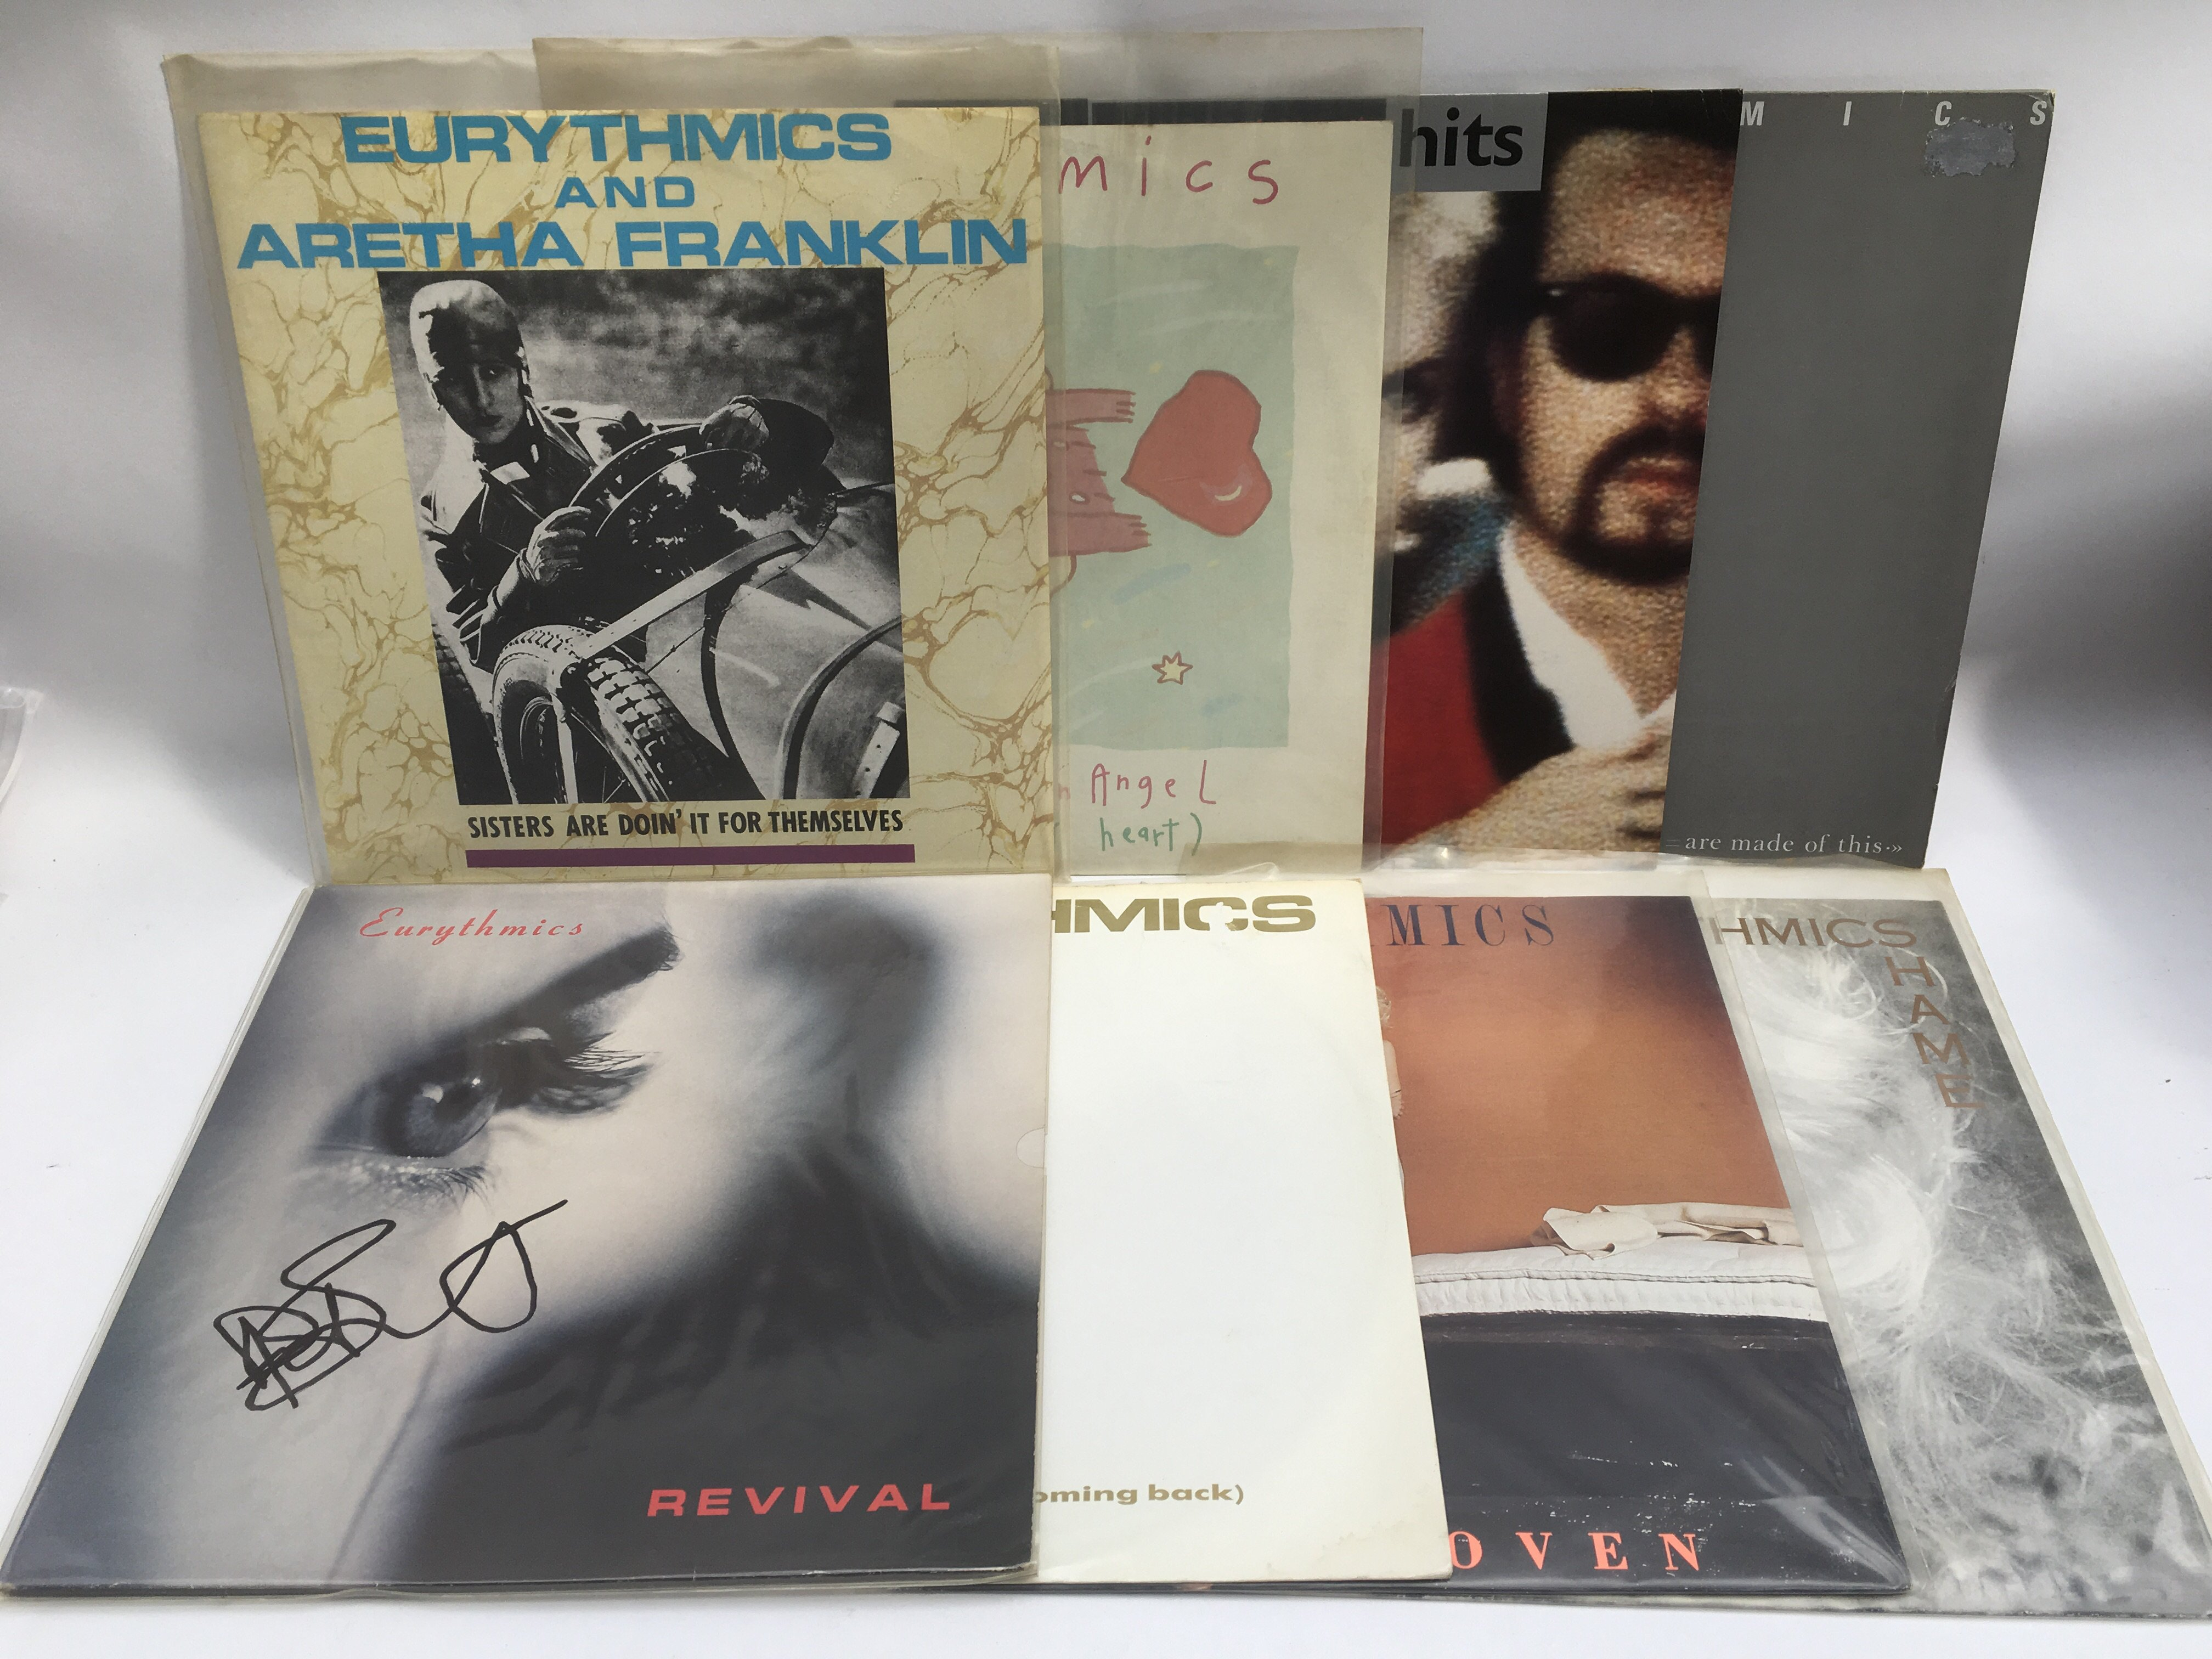 Lot 1770 - Eight records by Eurythmics including a 12inch sin